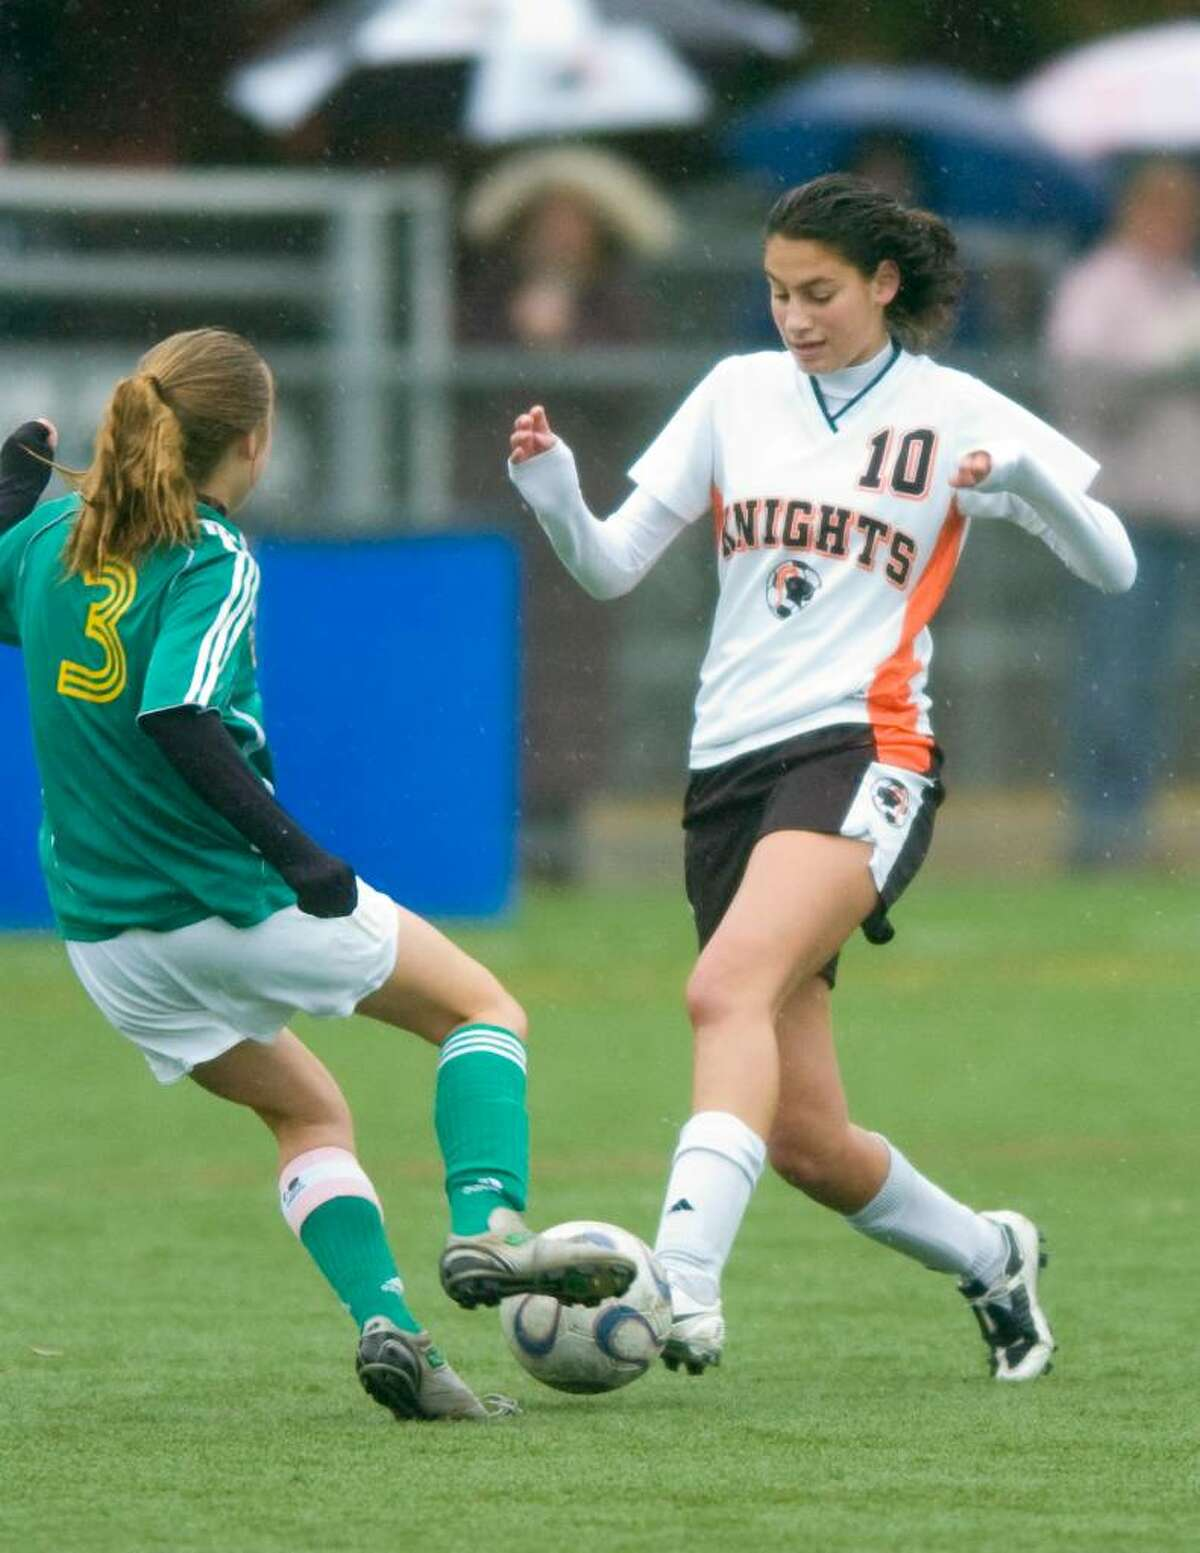 Stamford's Lauren Schapiro, right, and Trinity's Riley Northrop, left, during and FCIAC girls soccer game at Stamford High School in Stamford, Conn. on Thursday, Oct. 15, 2009.